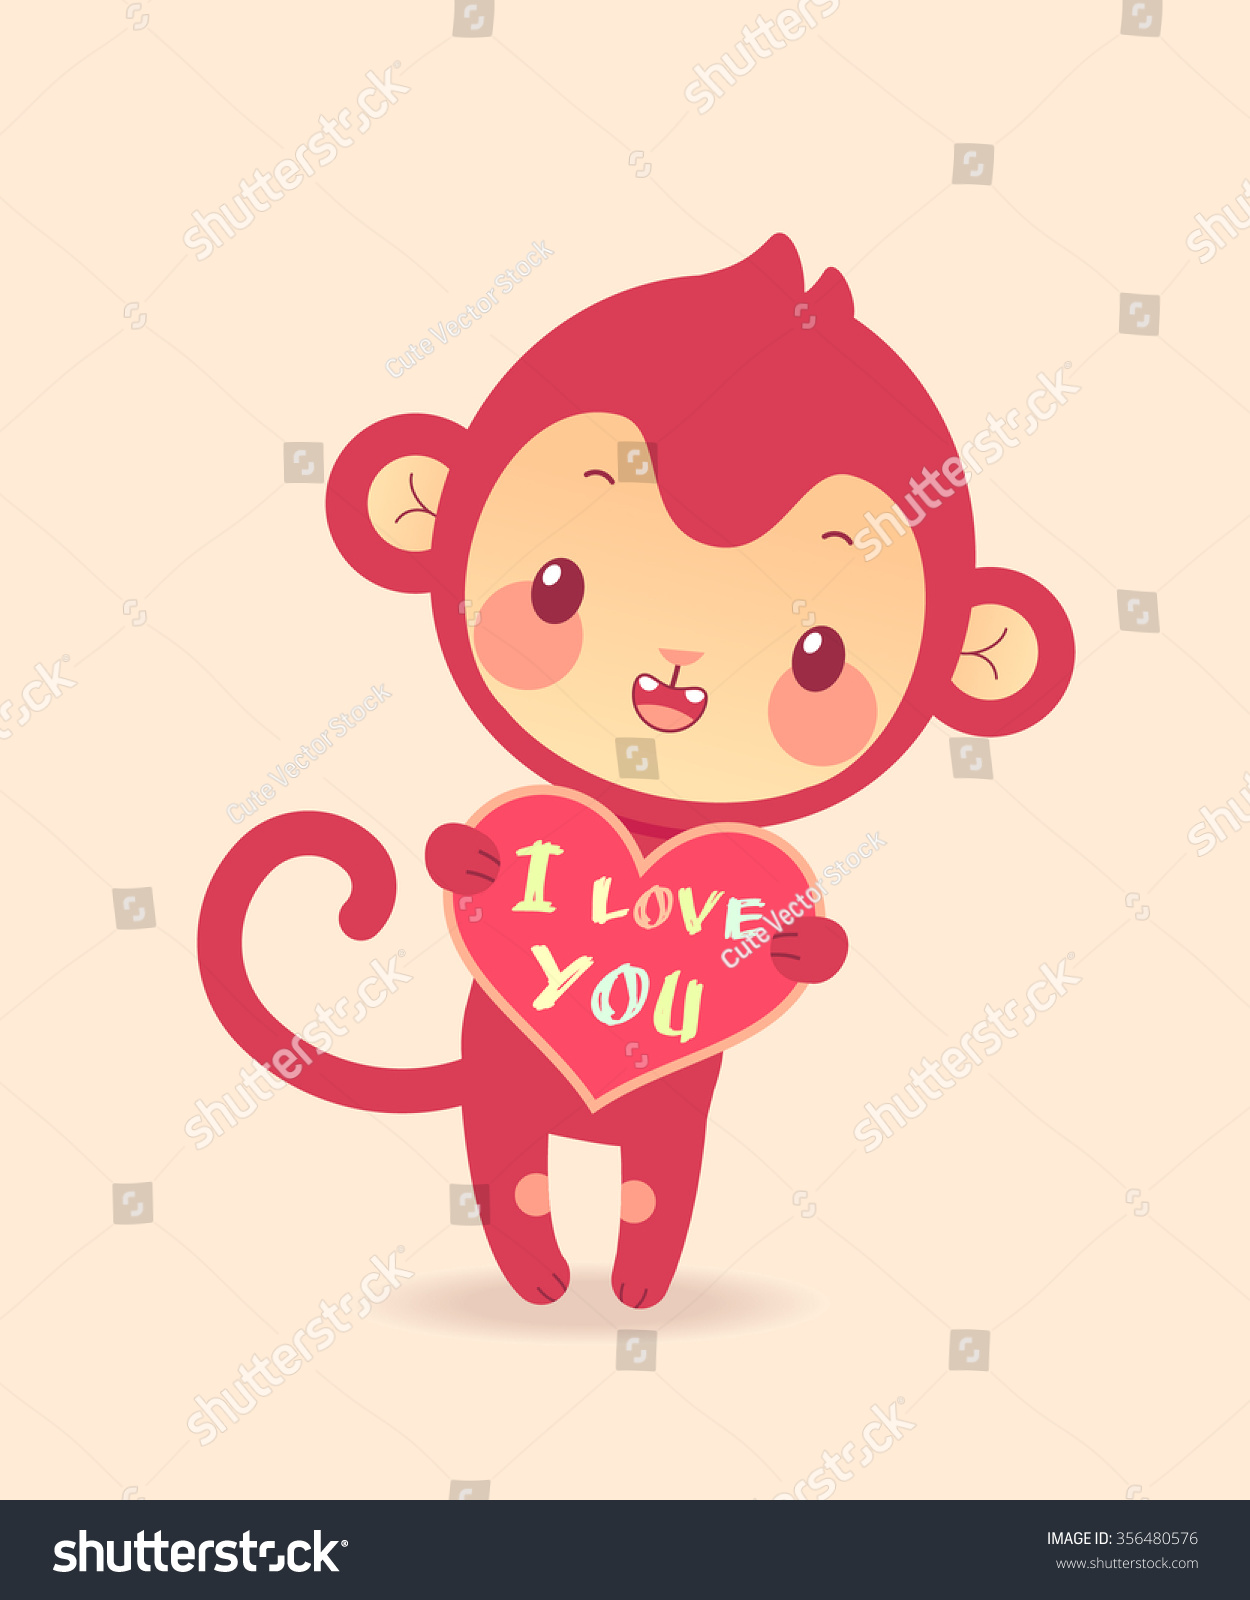 Cute cartoon monkey love - photo#6